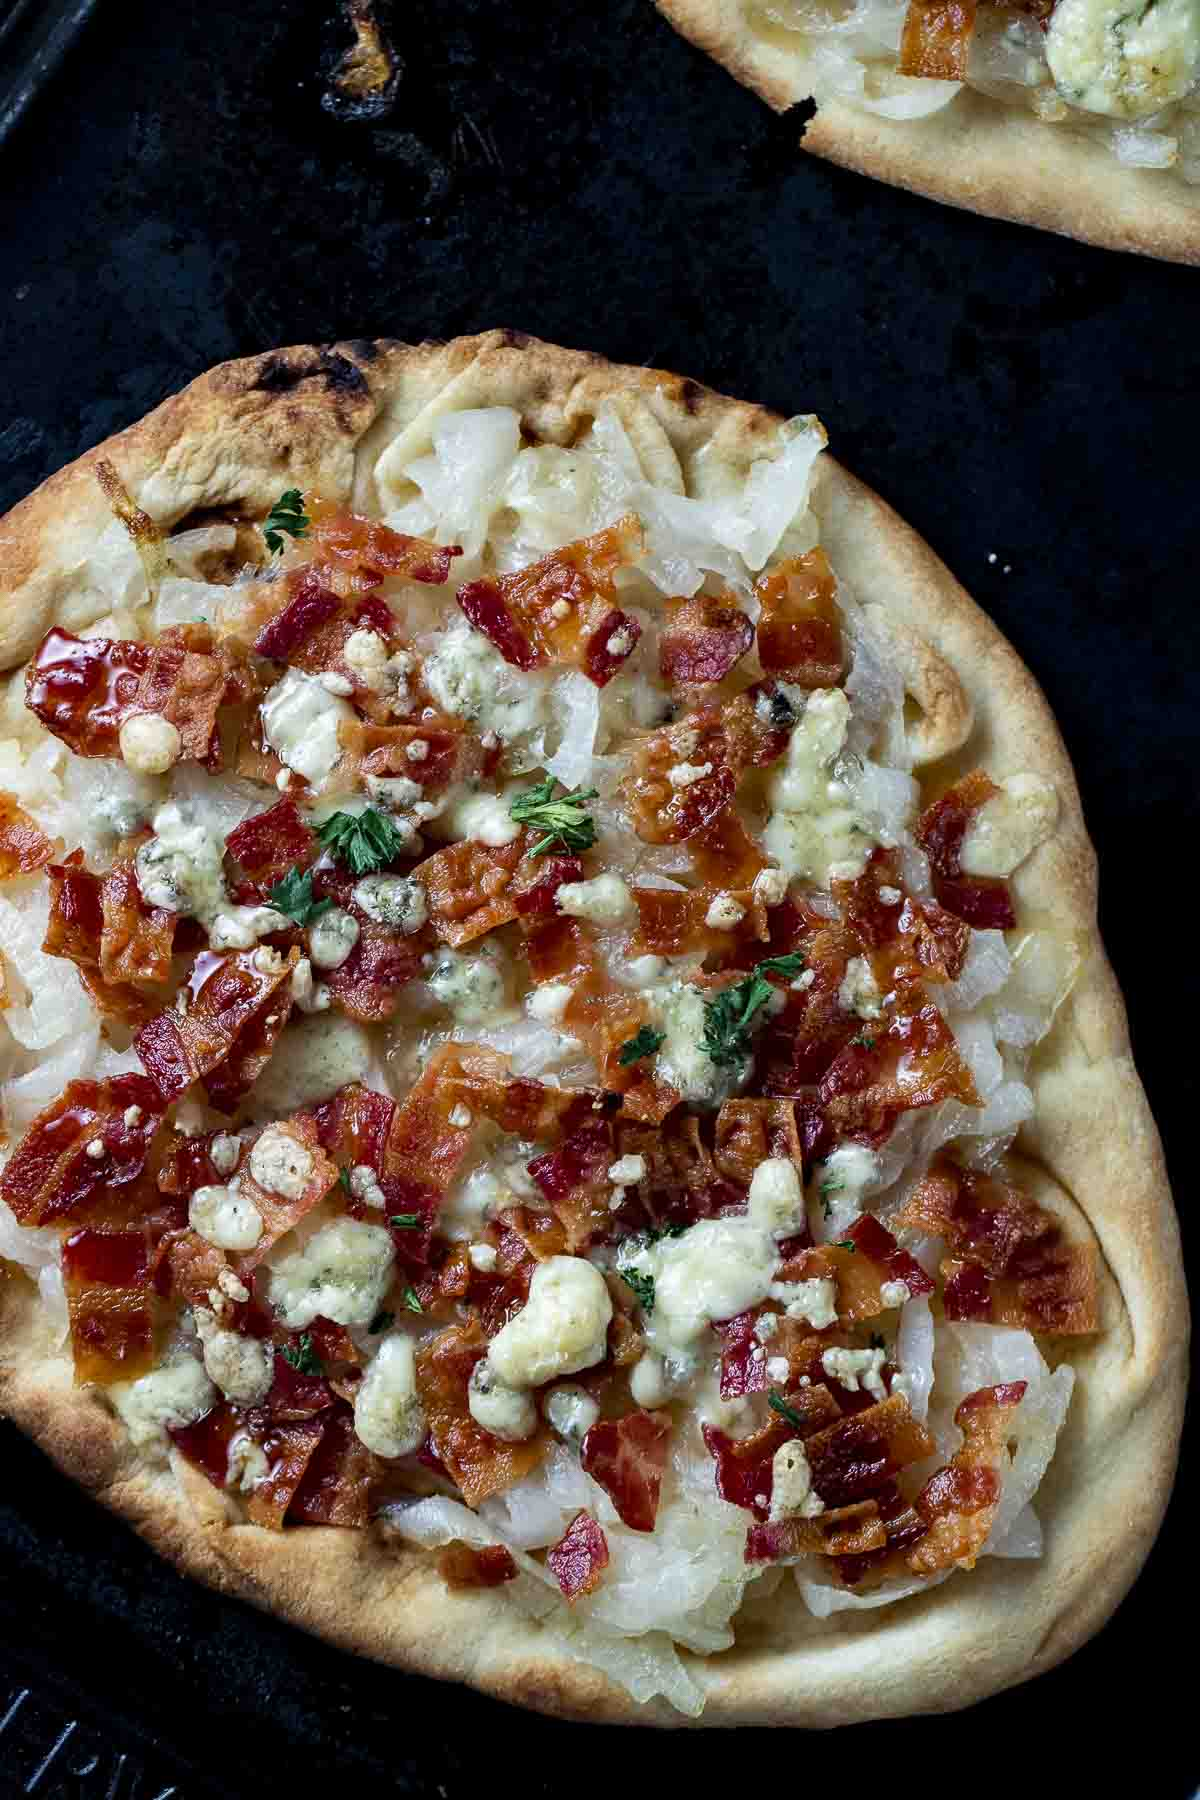 pizza with onions, bacon and crumbled cheese on top